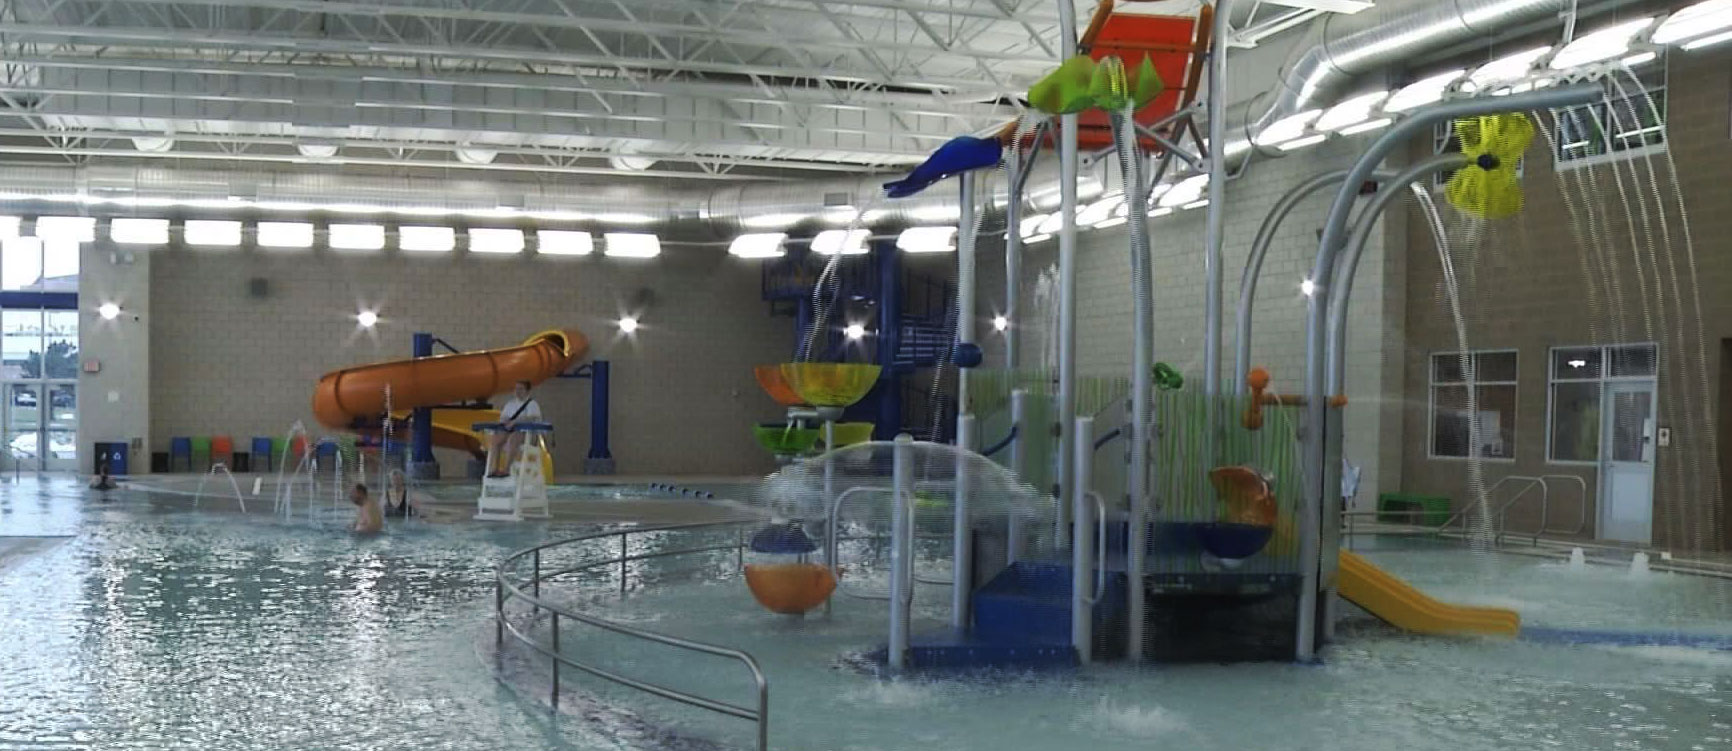 Breastfeeding Mother Told To Cover Up At Aquatic Center